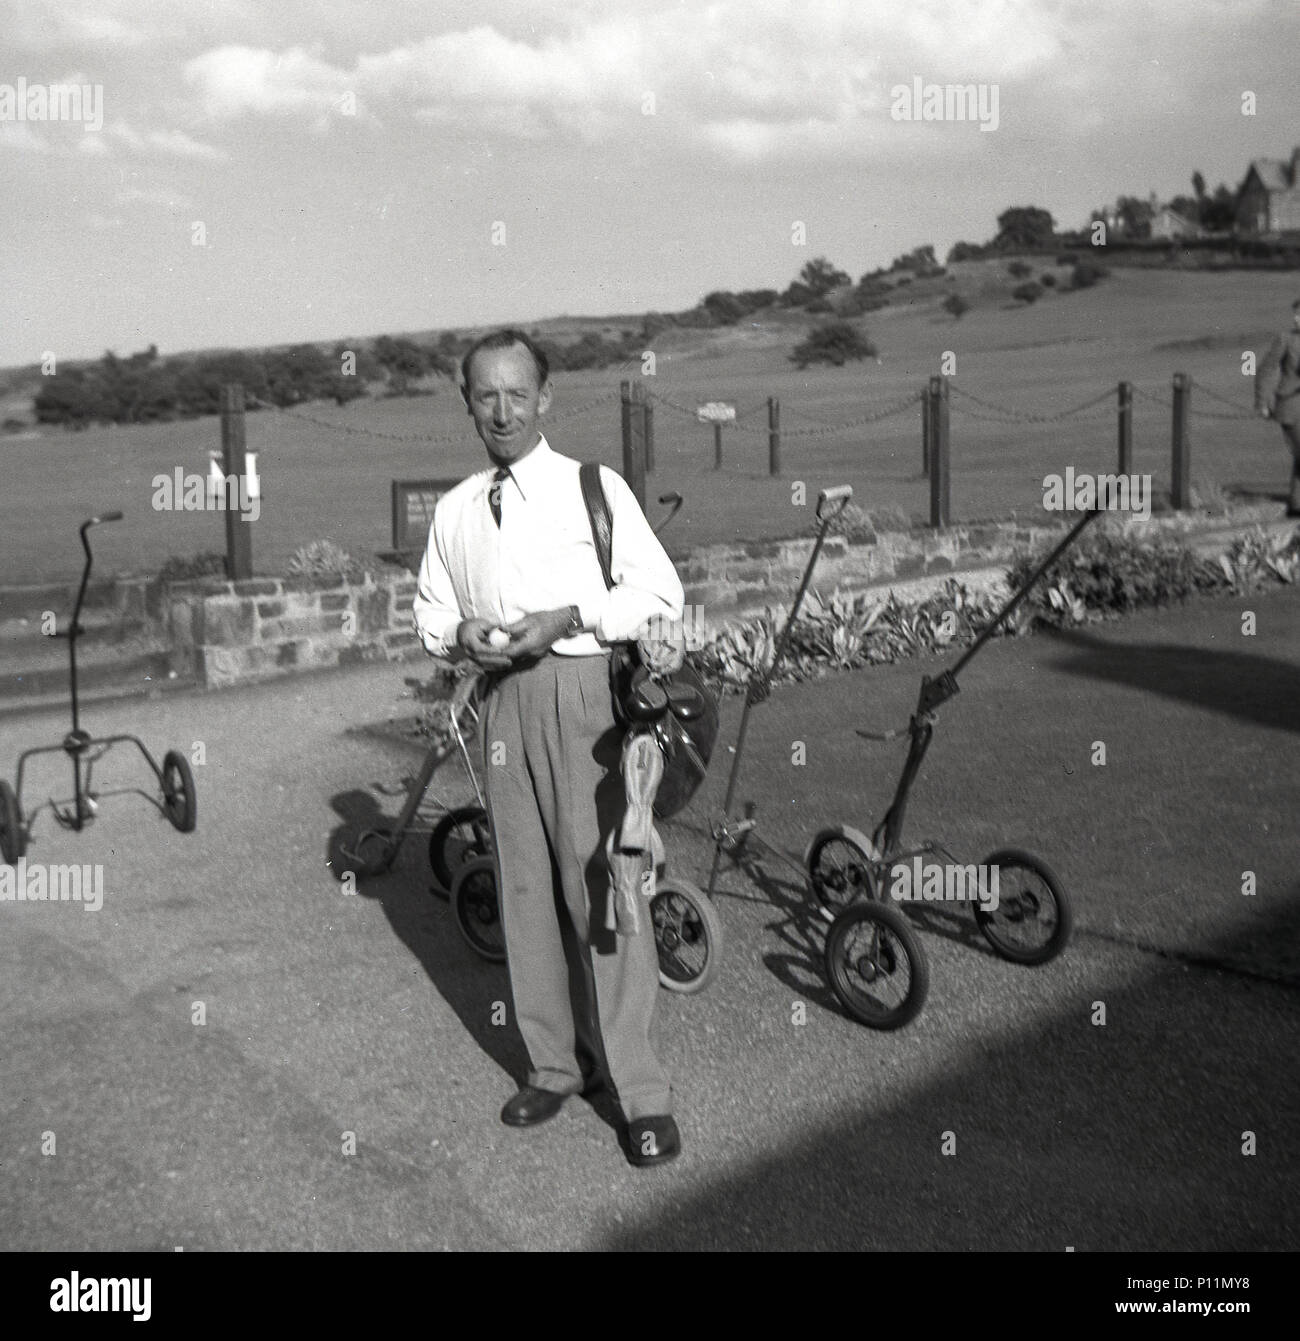 1953, historical, smartly dresssed adult male golfer in shirt and tie, with his clubs on his shoulder about to start his round of golf, England, UK. - Stock Image